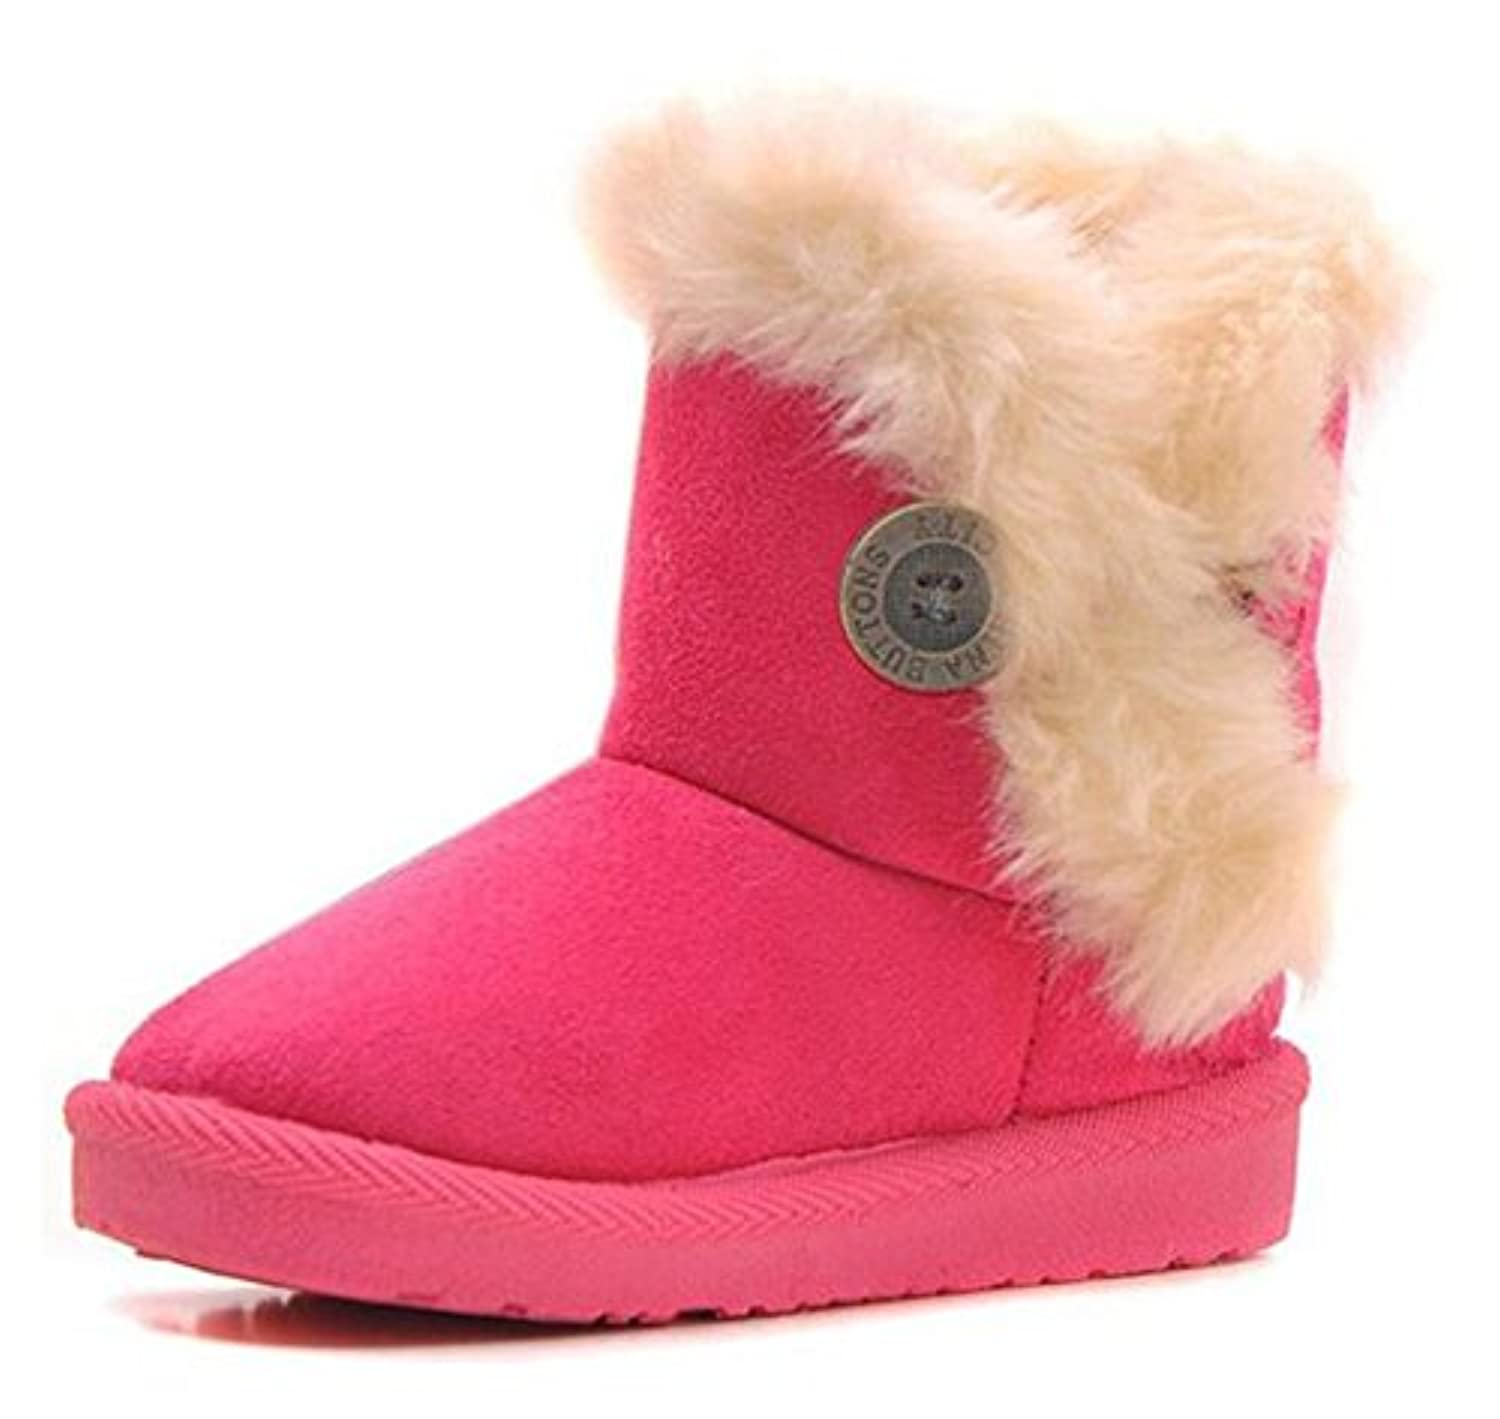 Arrowhunt Girls Boys Warm Winter Flat Shoes Button Snow Boot Pink